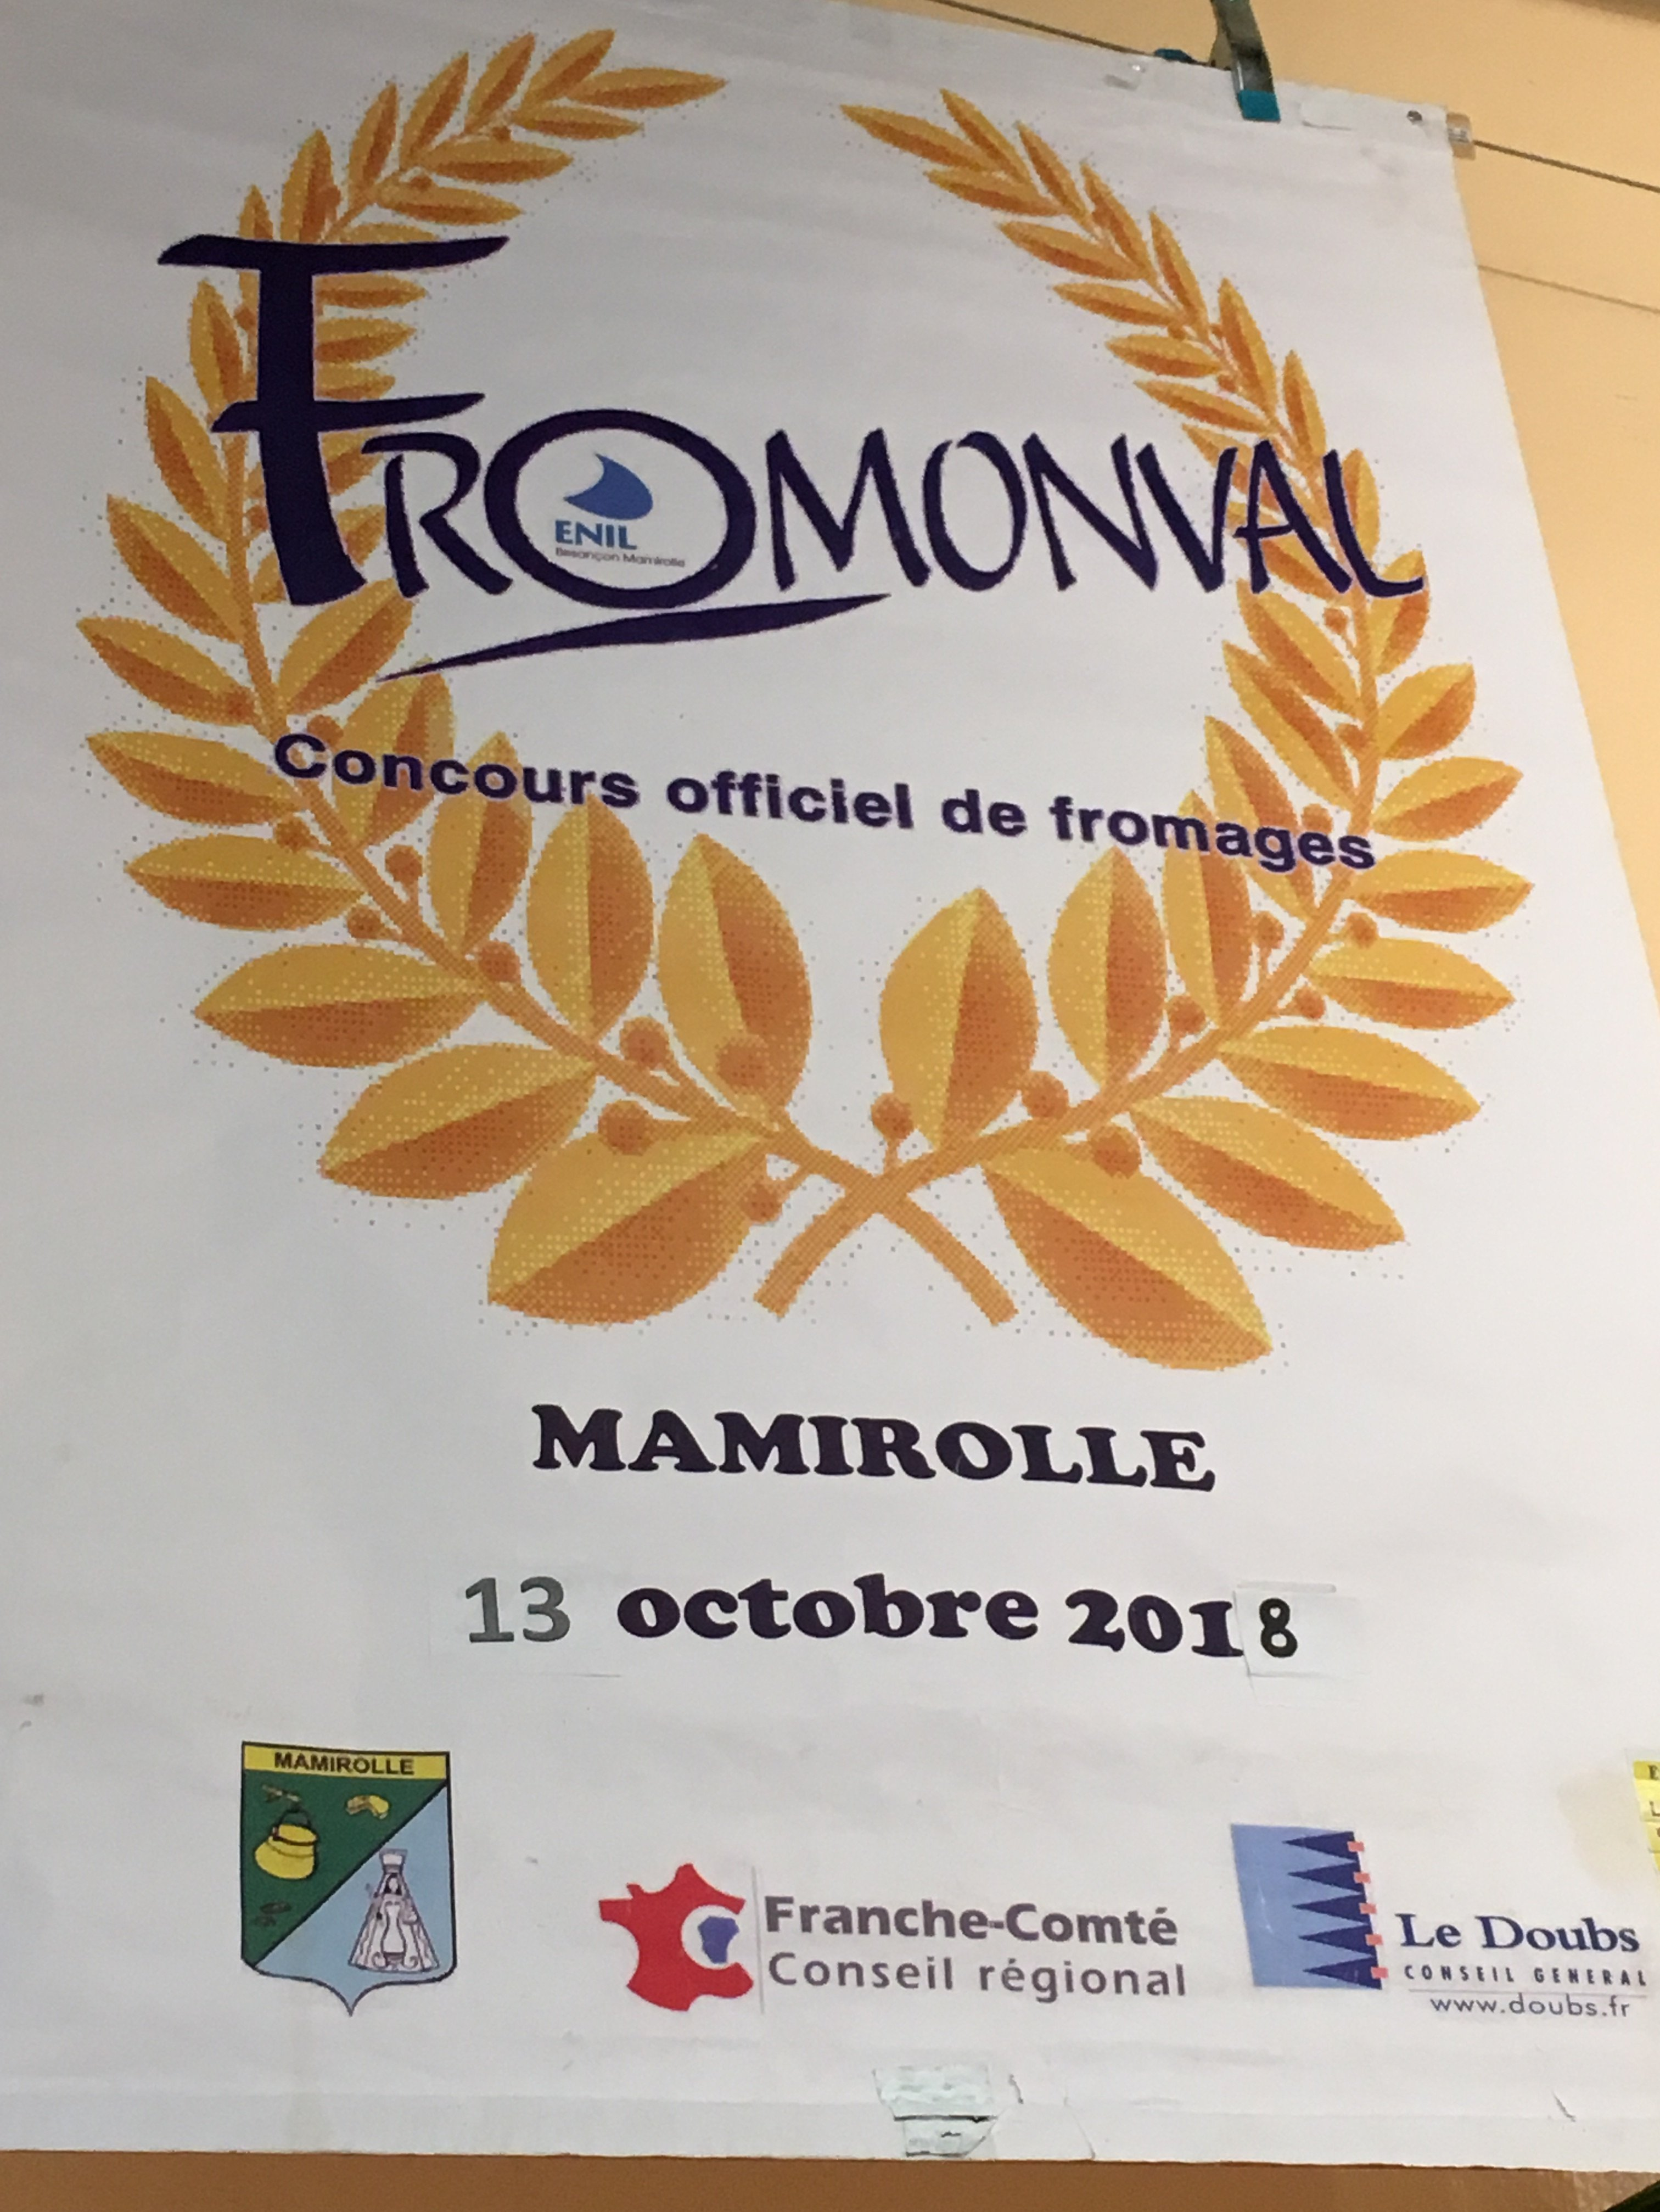 Le concours fromager Fromonval